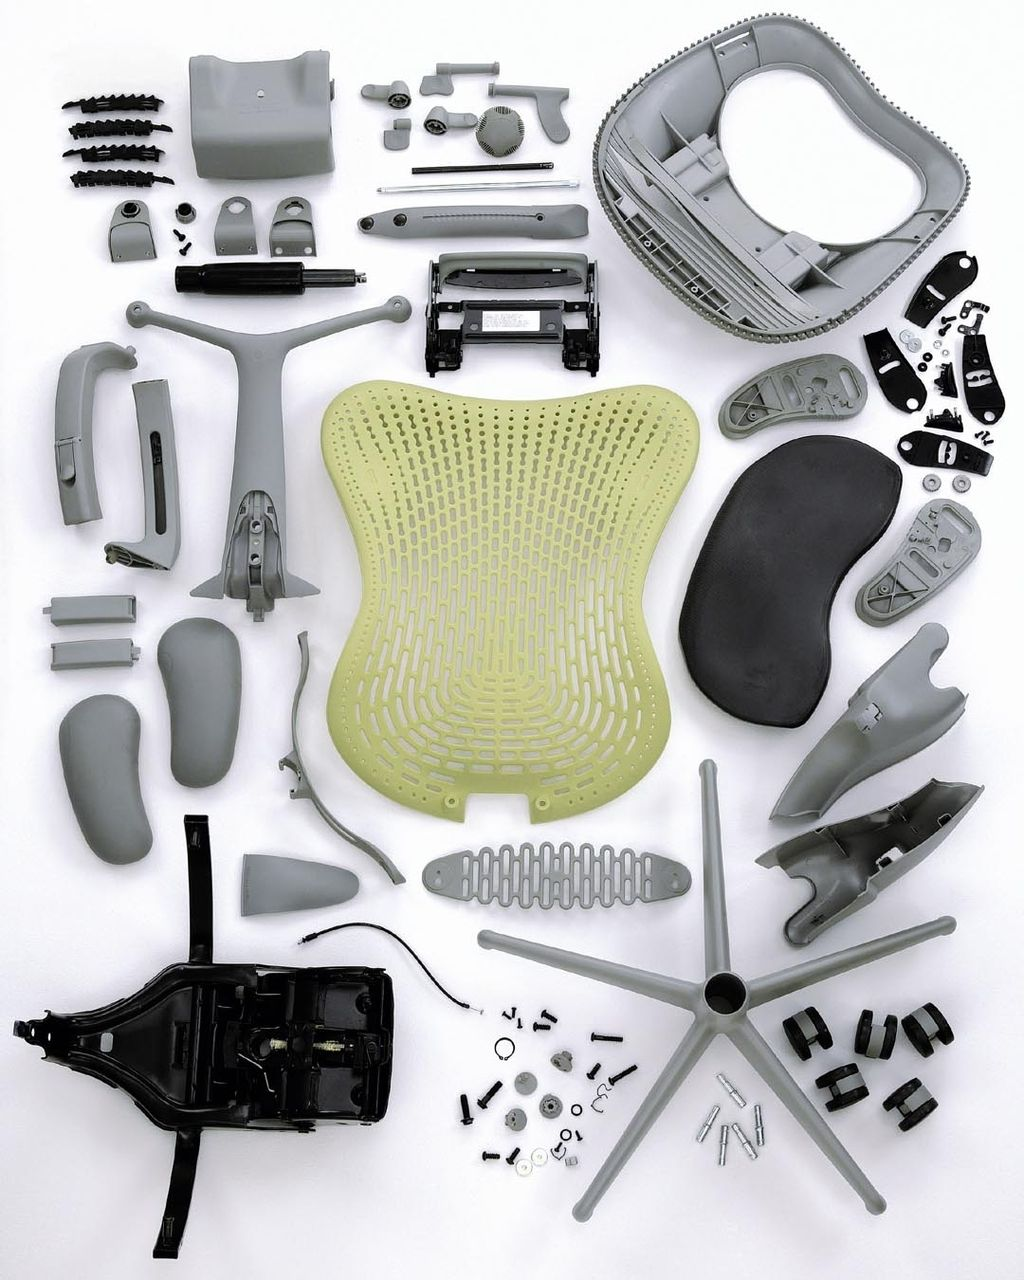 Herman Miller Mirra Chair For The Studio Looks Like You Get A Fair Few Parts For The Money Thankf Mirra Chair Office Chair Design Best Ergonomic Office Chair